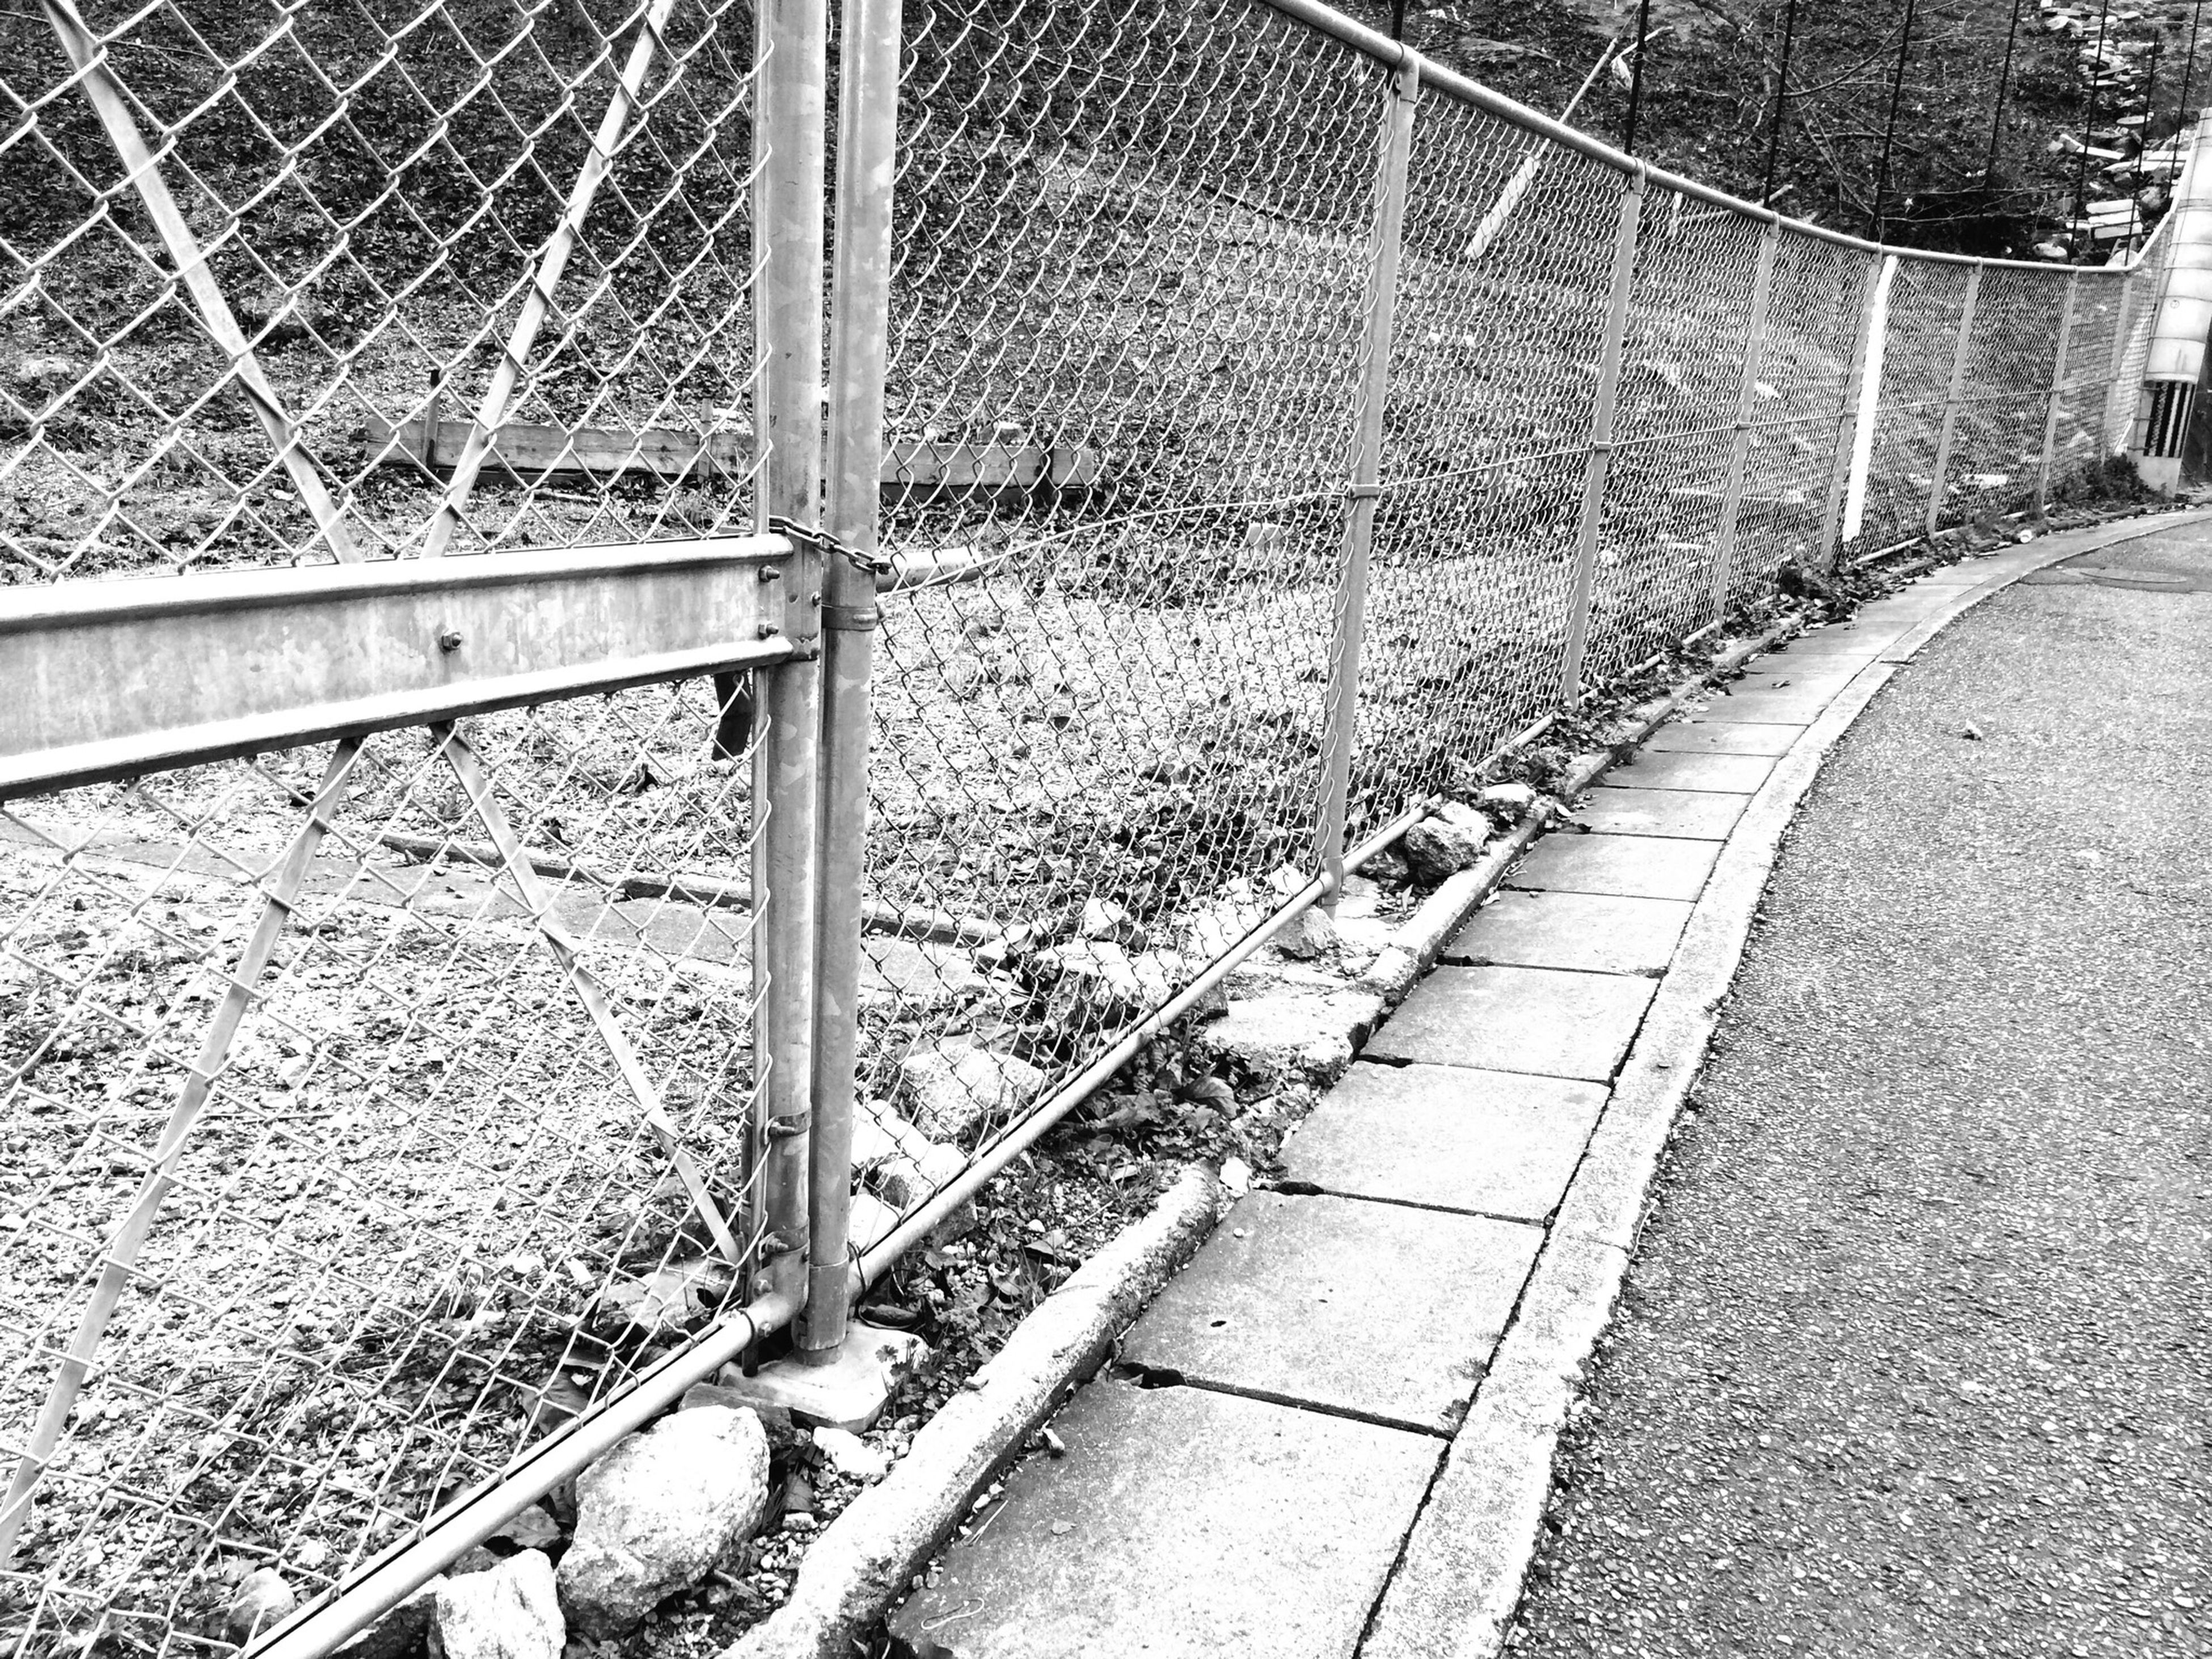 transportation, railroad track, metal, fence, chainlink fence, protection, the way forward, rail transportation, safety, railing, diminishing perspective, day, security, no people, outdoors, sunlight, empty, metallic, road, vanishing point